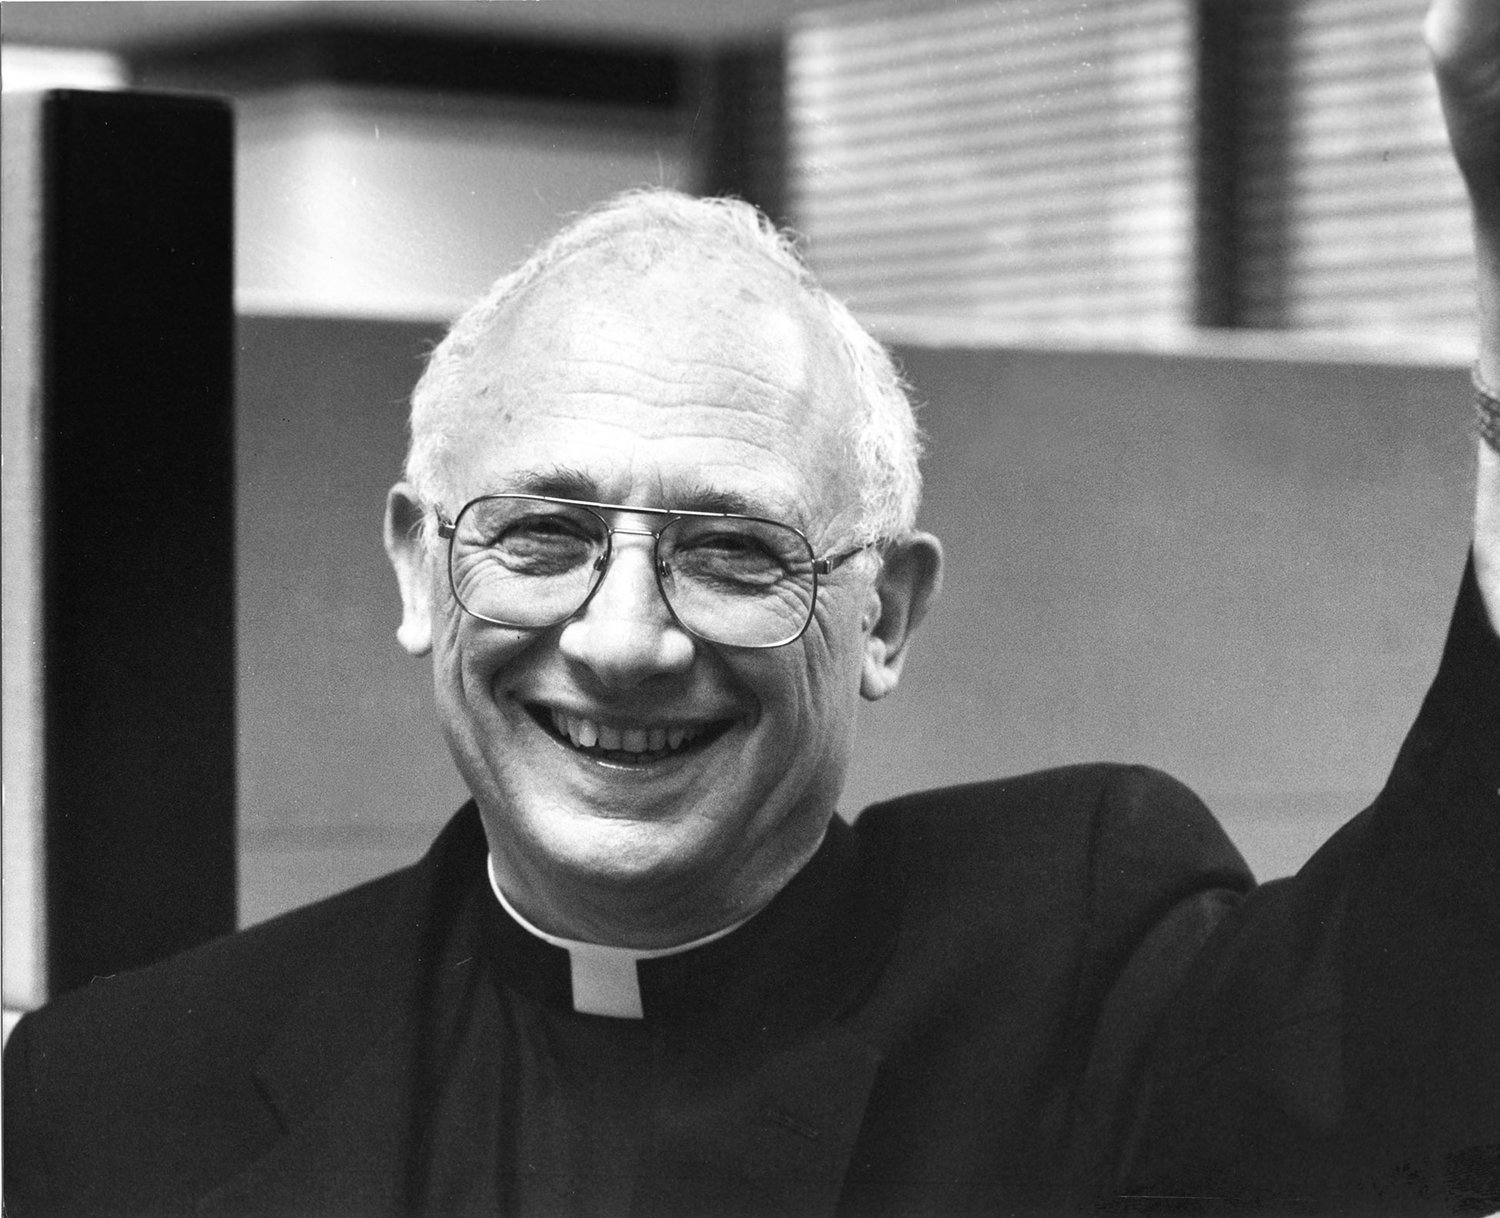 Bishop Brucato's signature smile was an asset.